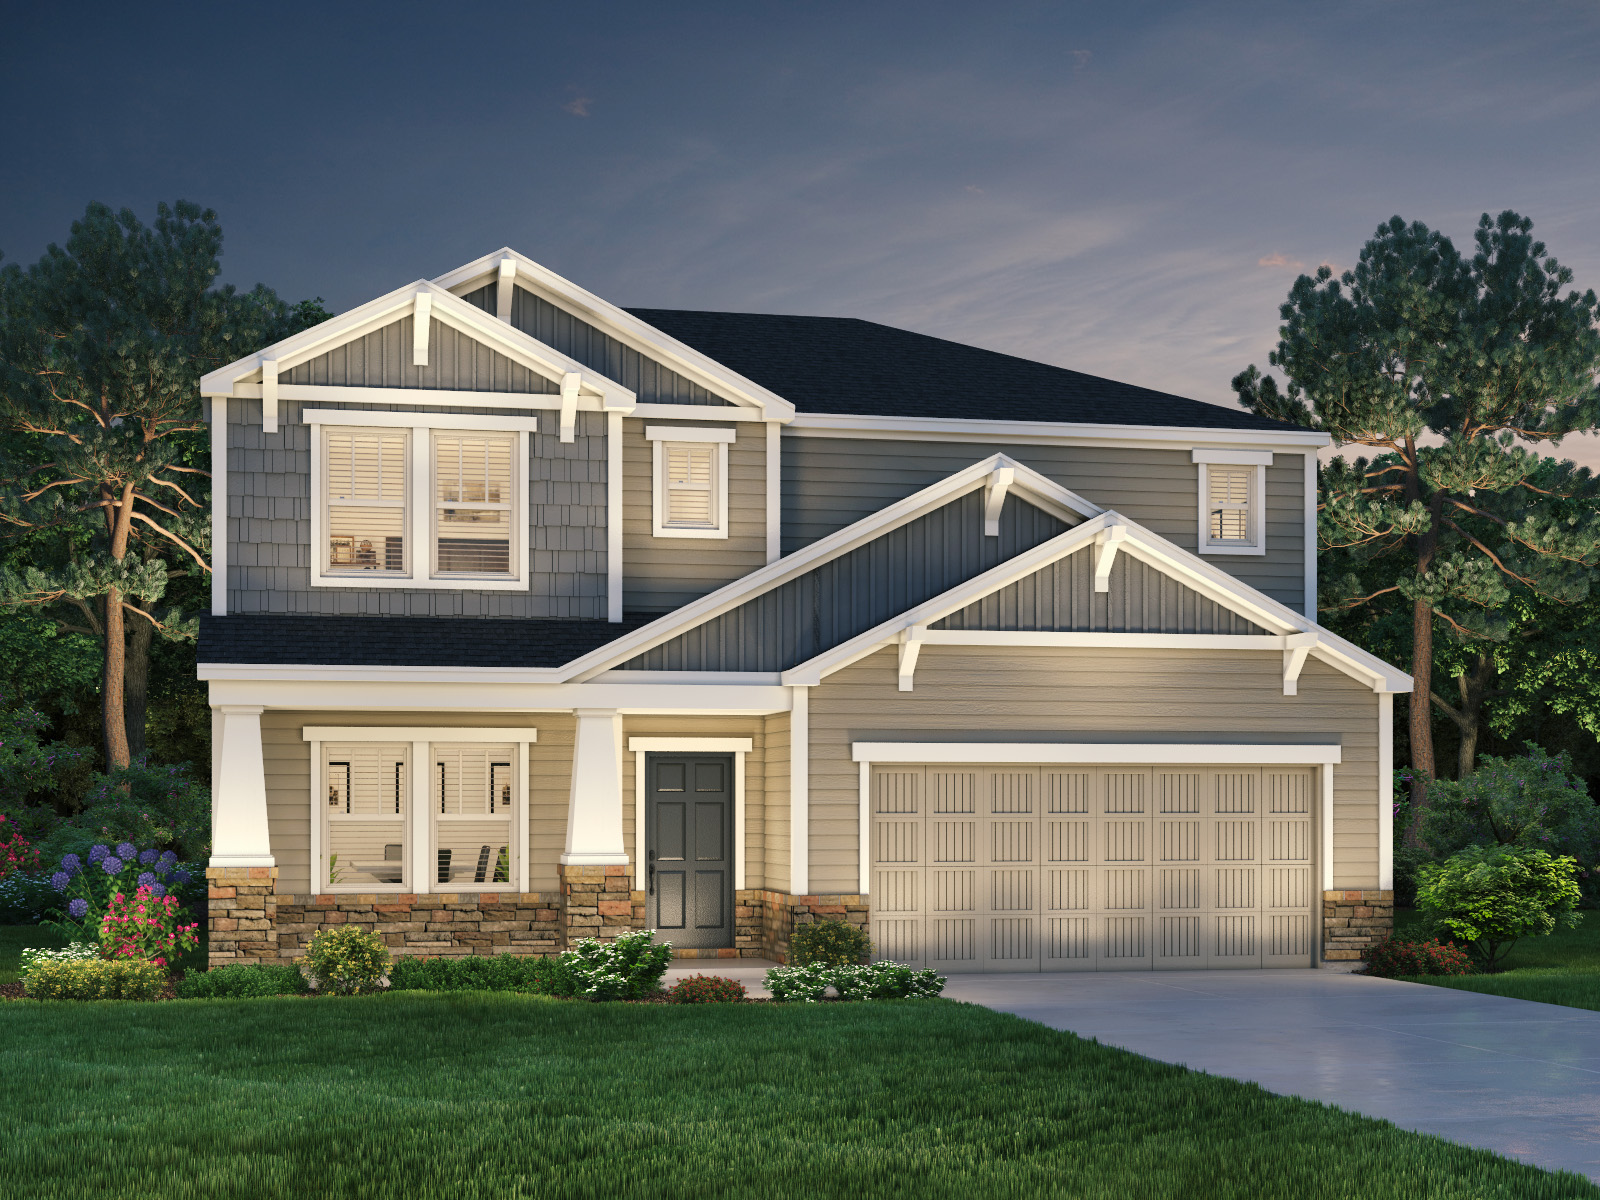 Bridgewater by Meritage Homes | New Homes for sale in Simpsonville, SC